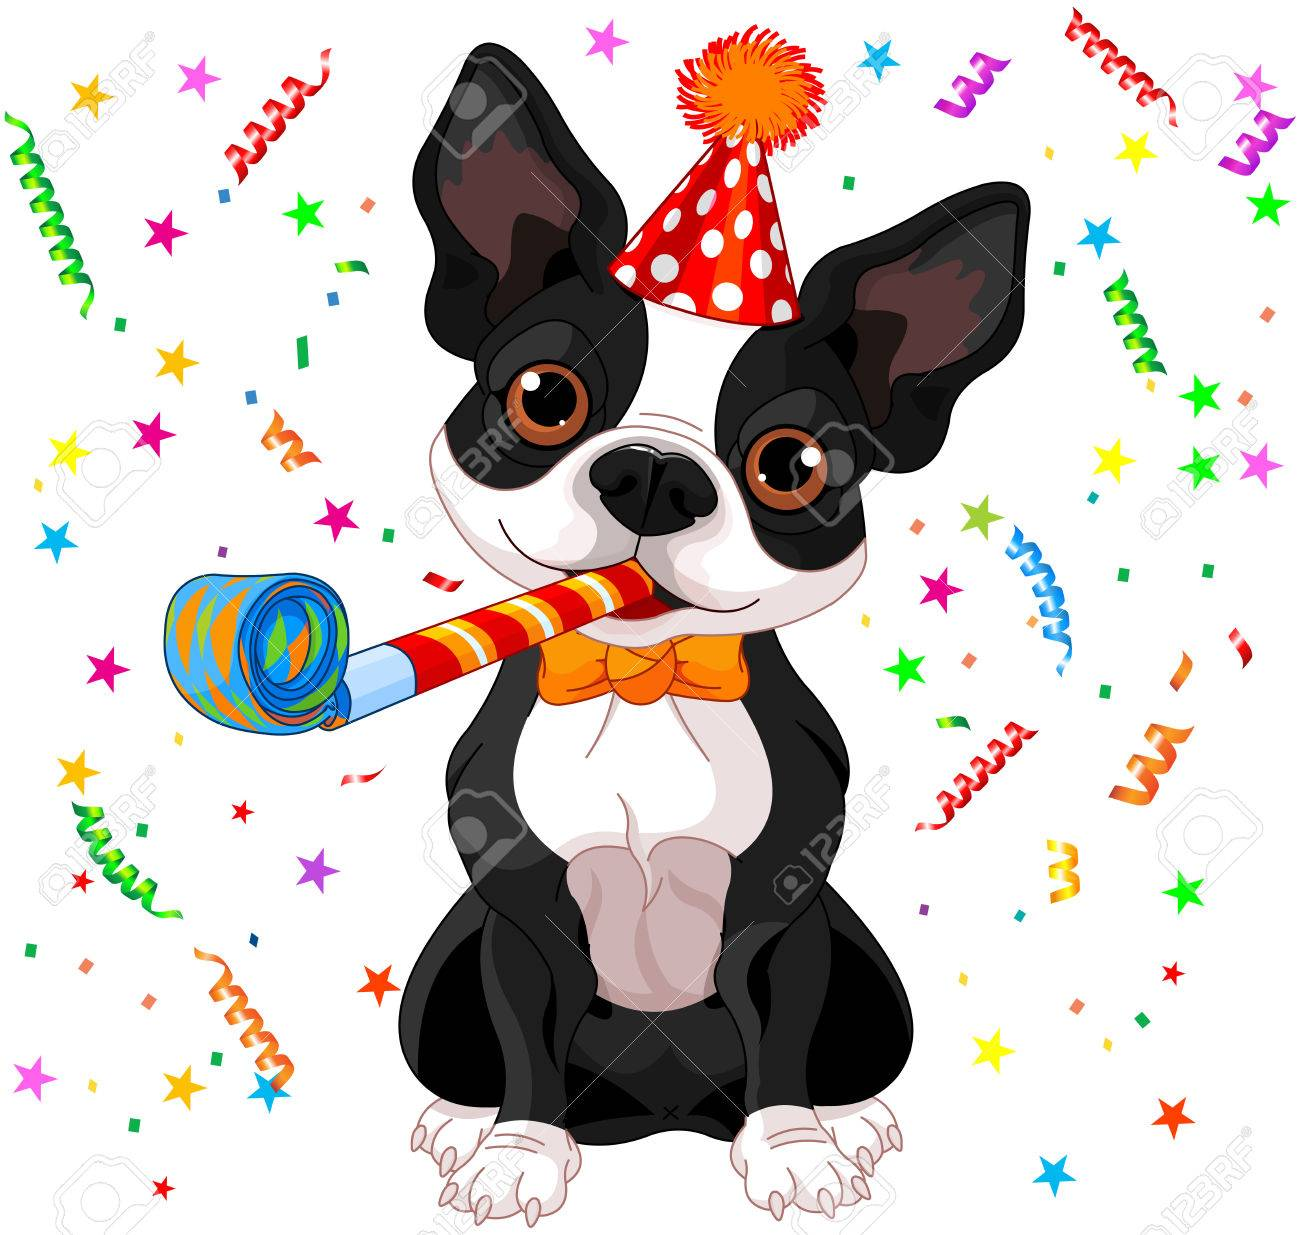 Peur des bruits - Page 10 35588778-illustration-of-cute-boston-terrier-celebrating